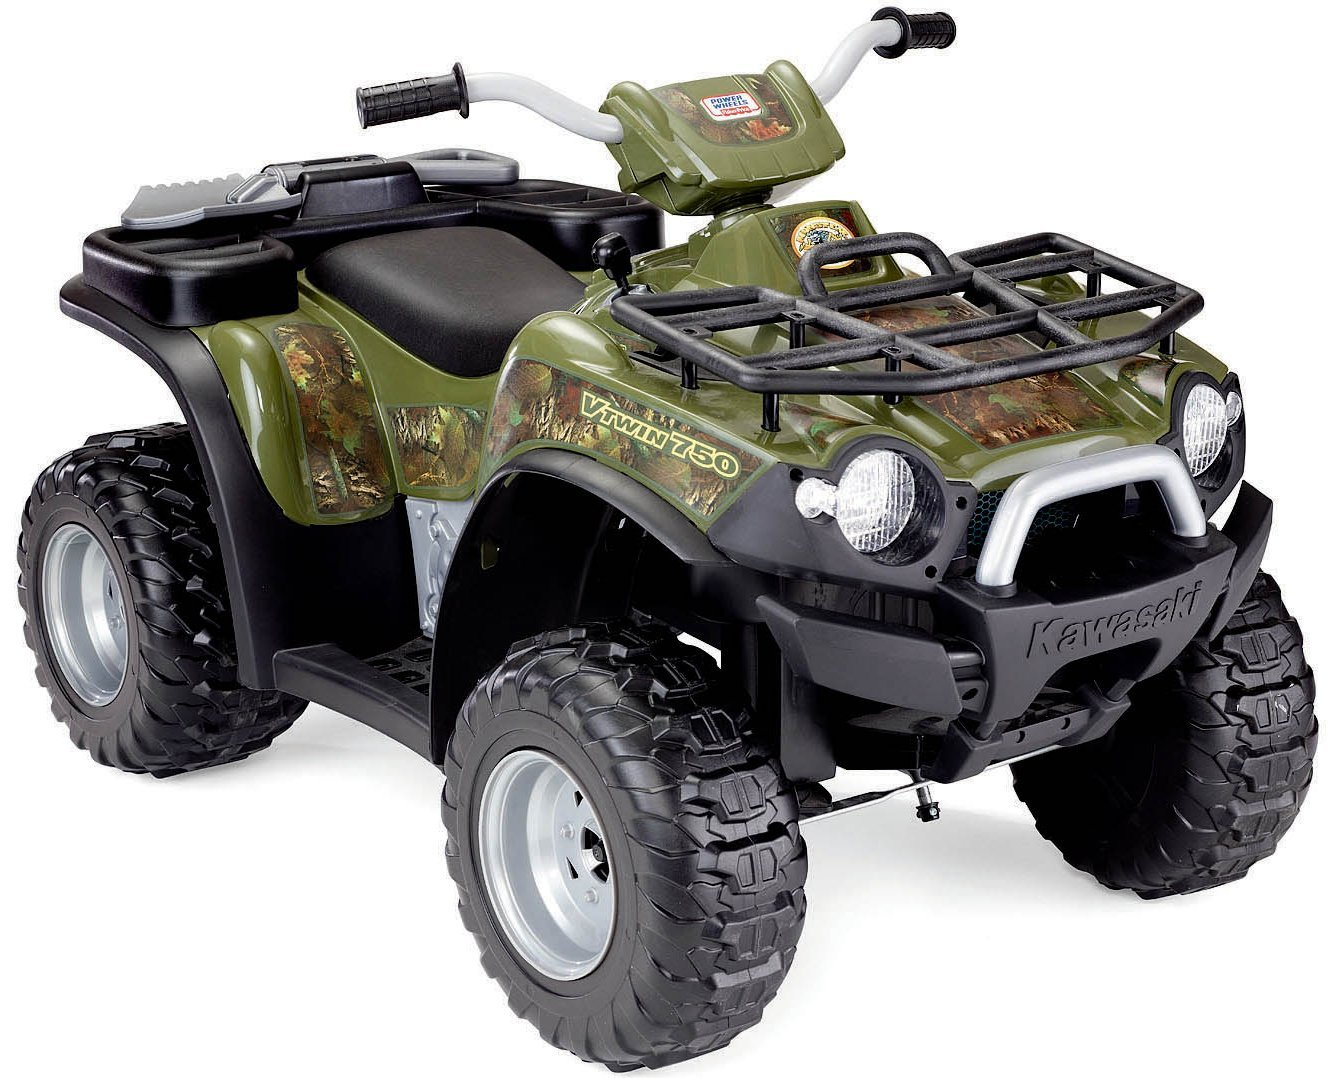 Best Power Wheels For Grass What You Need To Look For